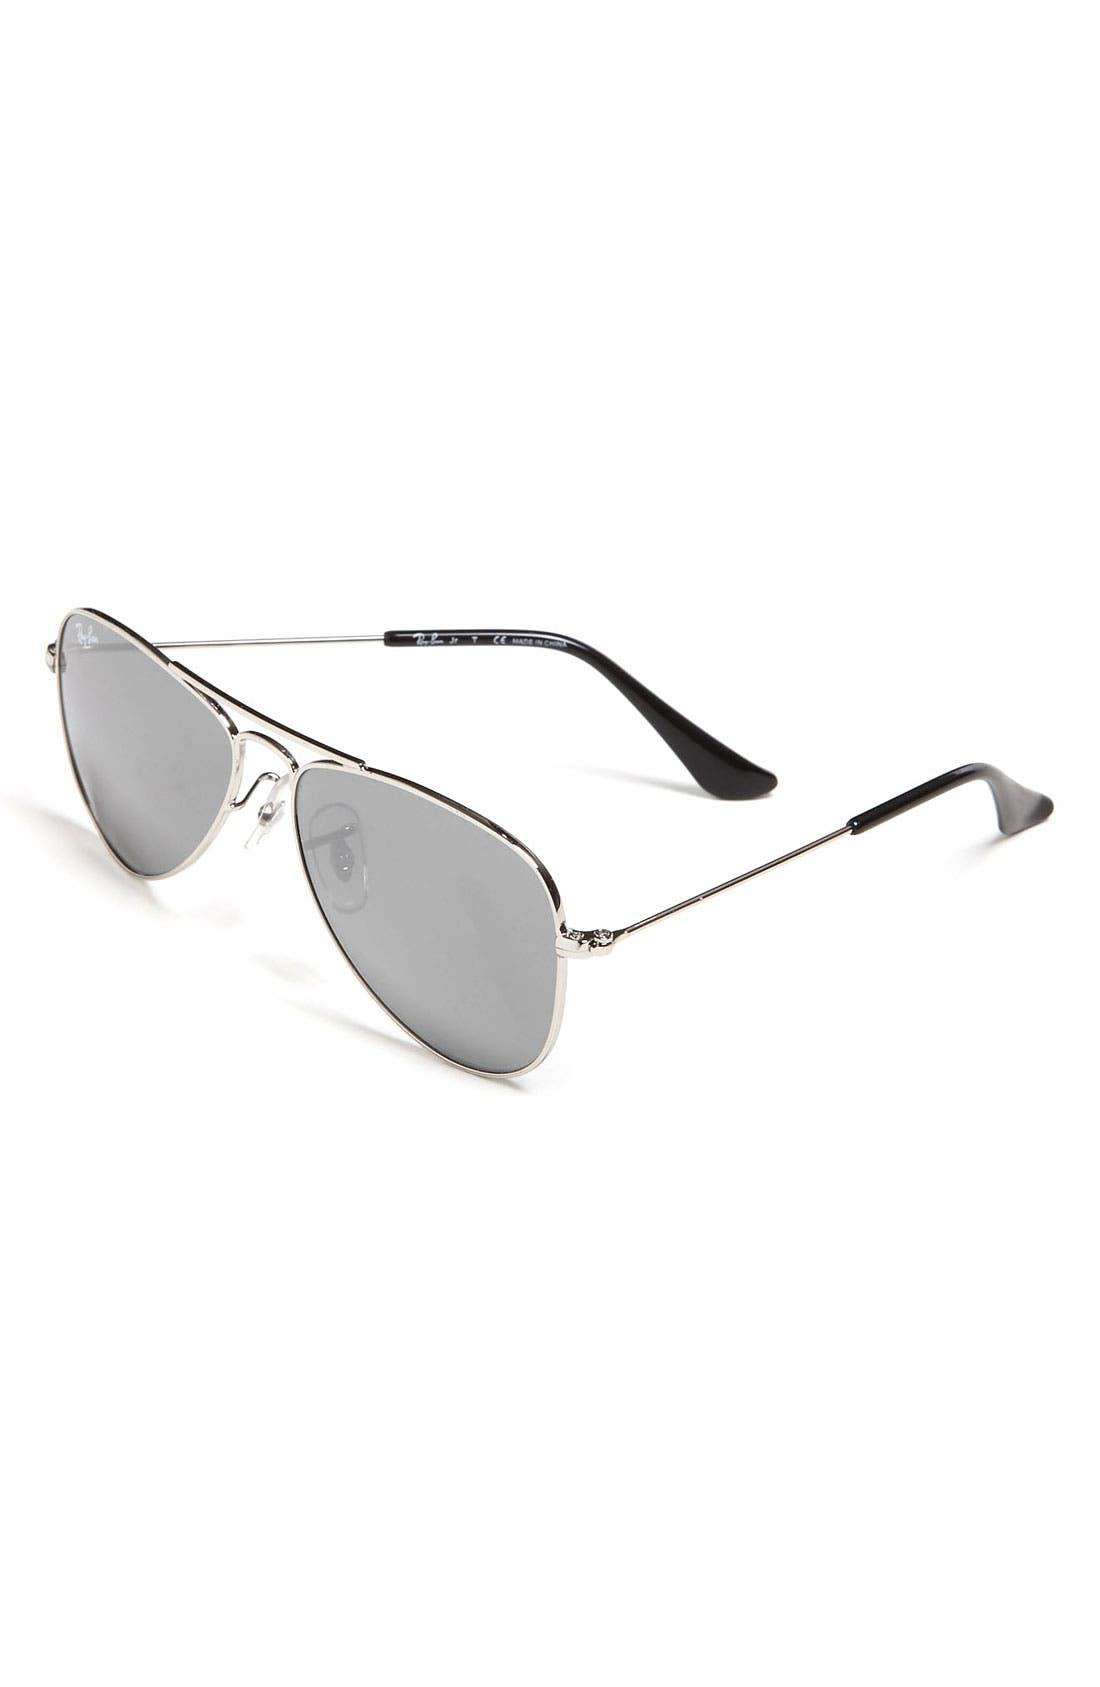 Alternate Image 1 Selected - Ray-Ban Aviator 50mm Sunglasses (Big Boys)